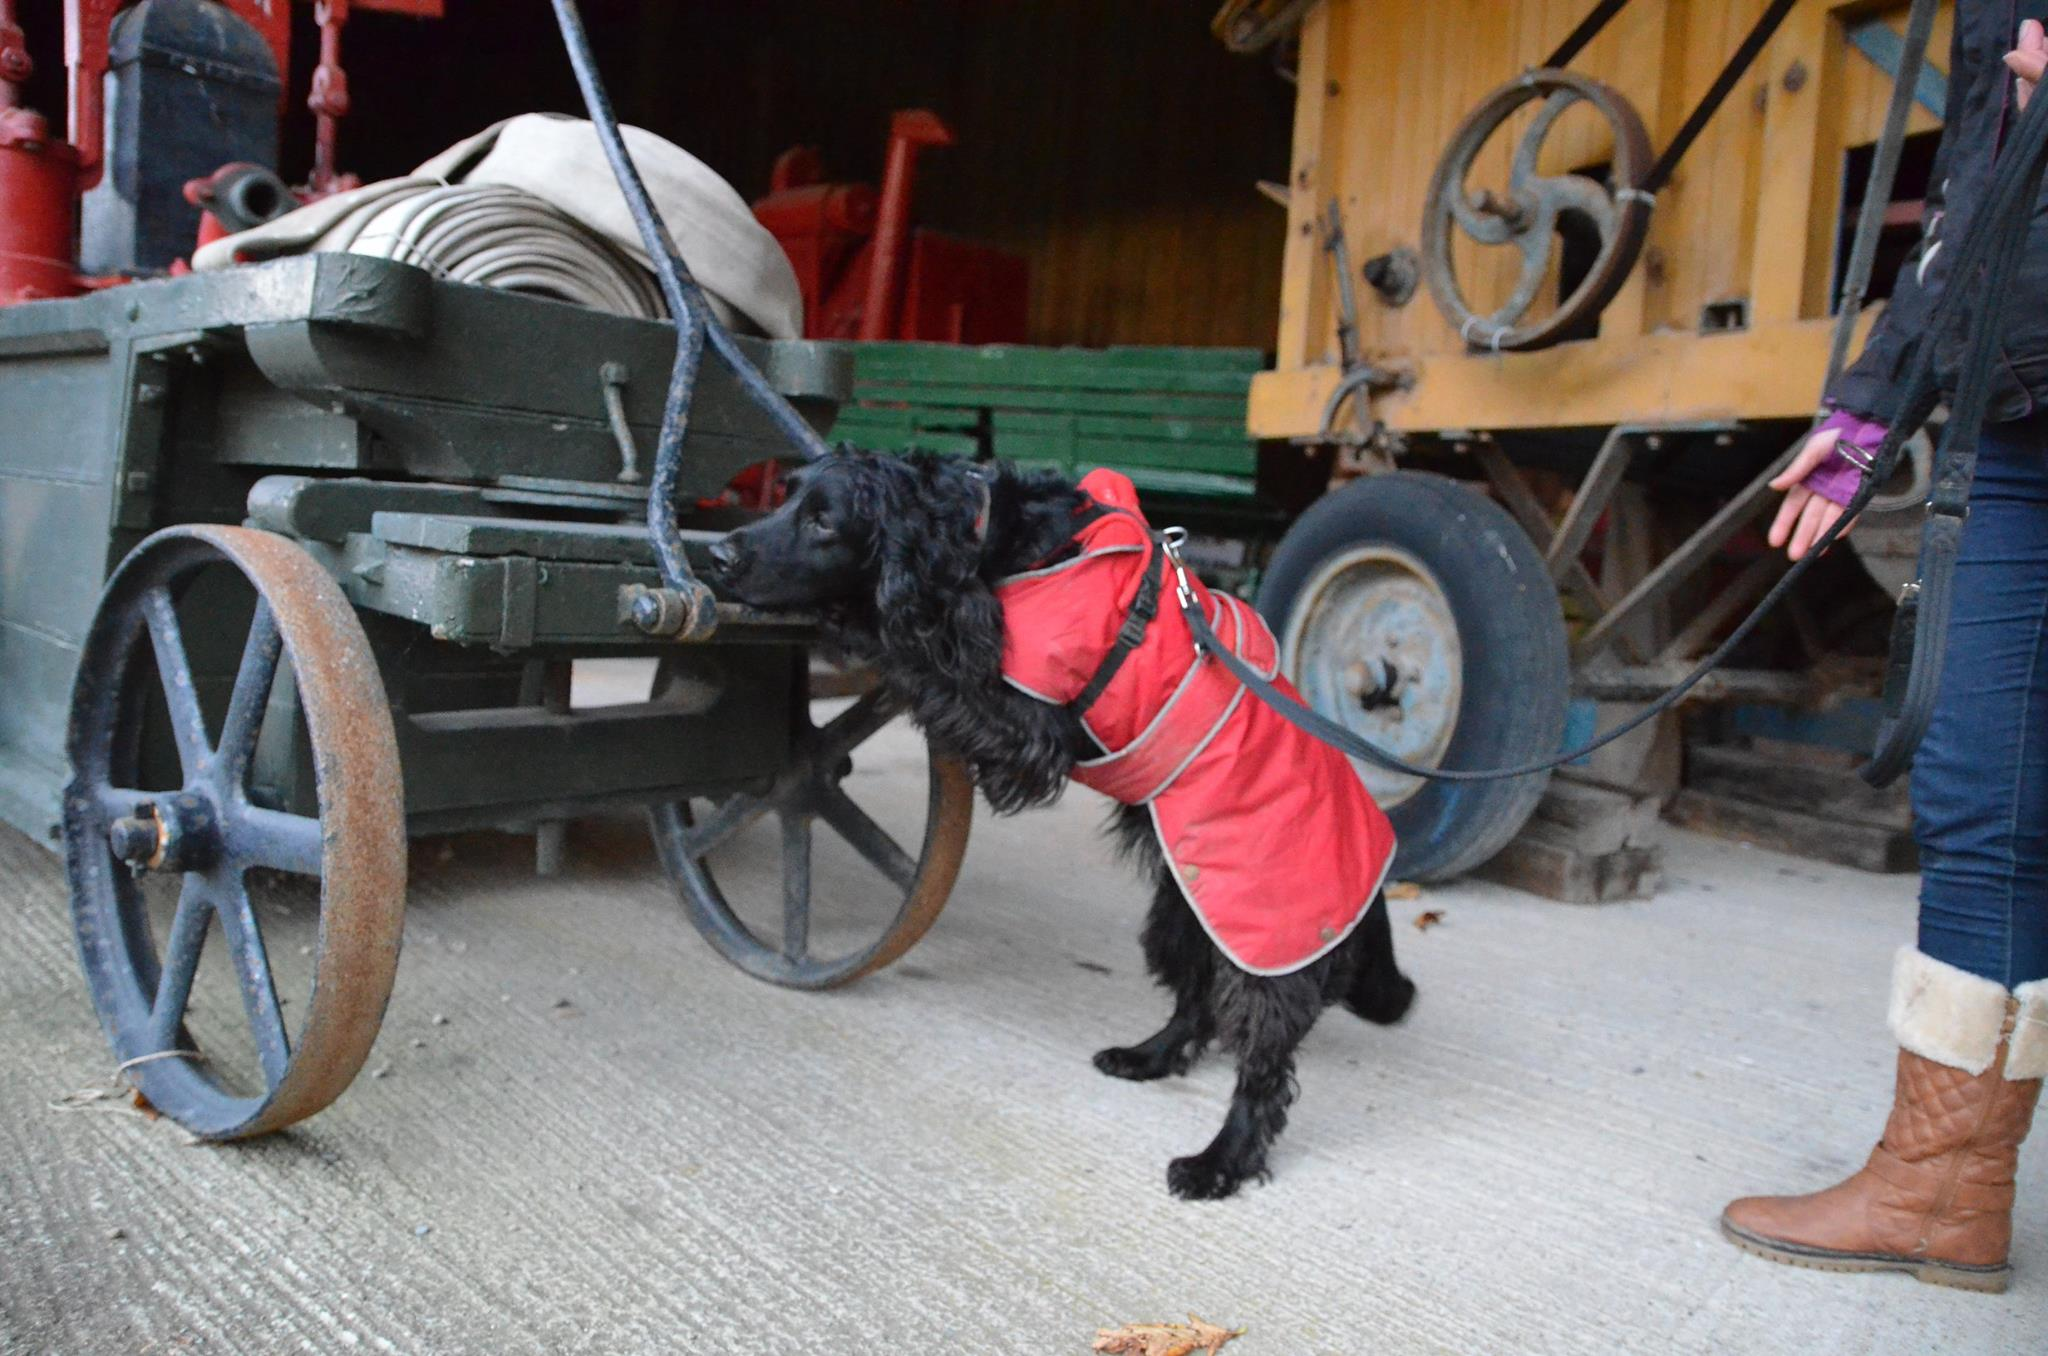 spaniel in red coat searches horse carriage